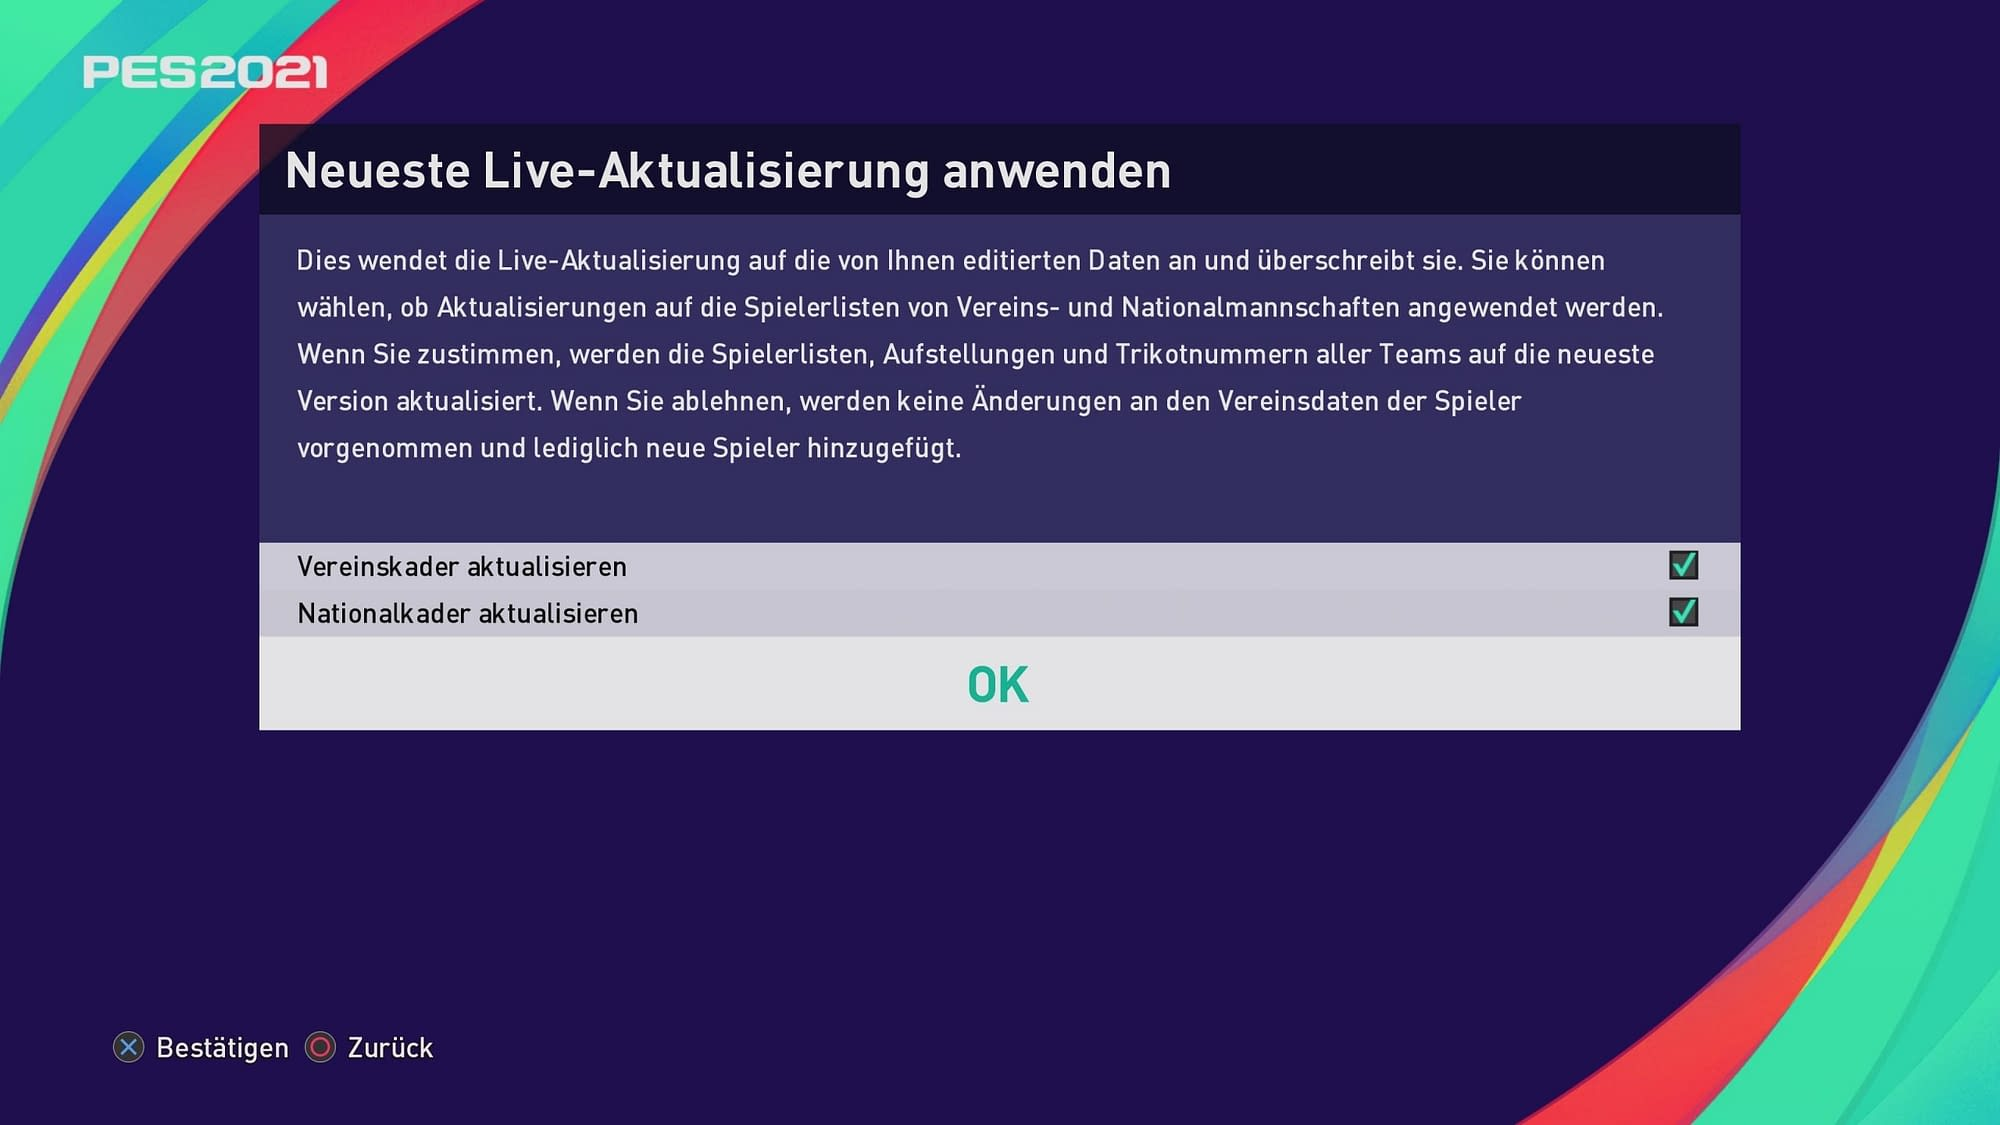 PES 2021 Patch Live Aktualisierung anwenden